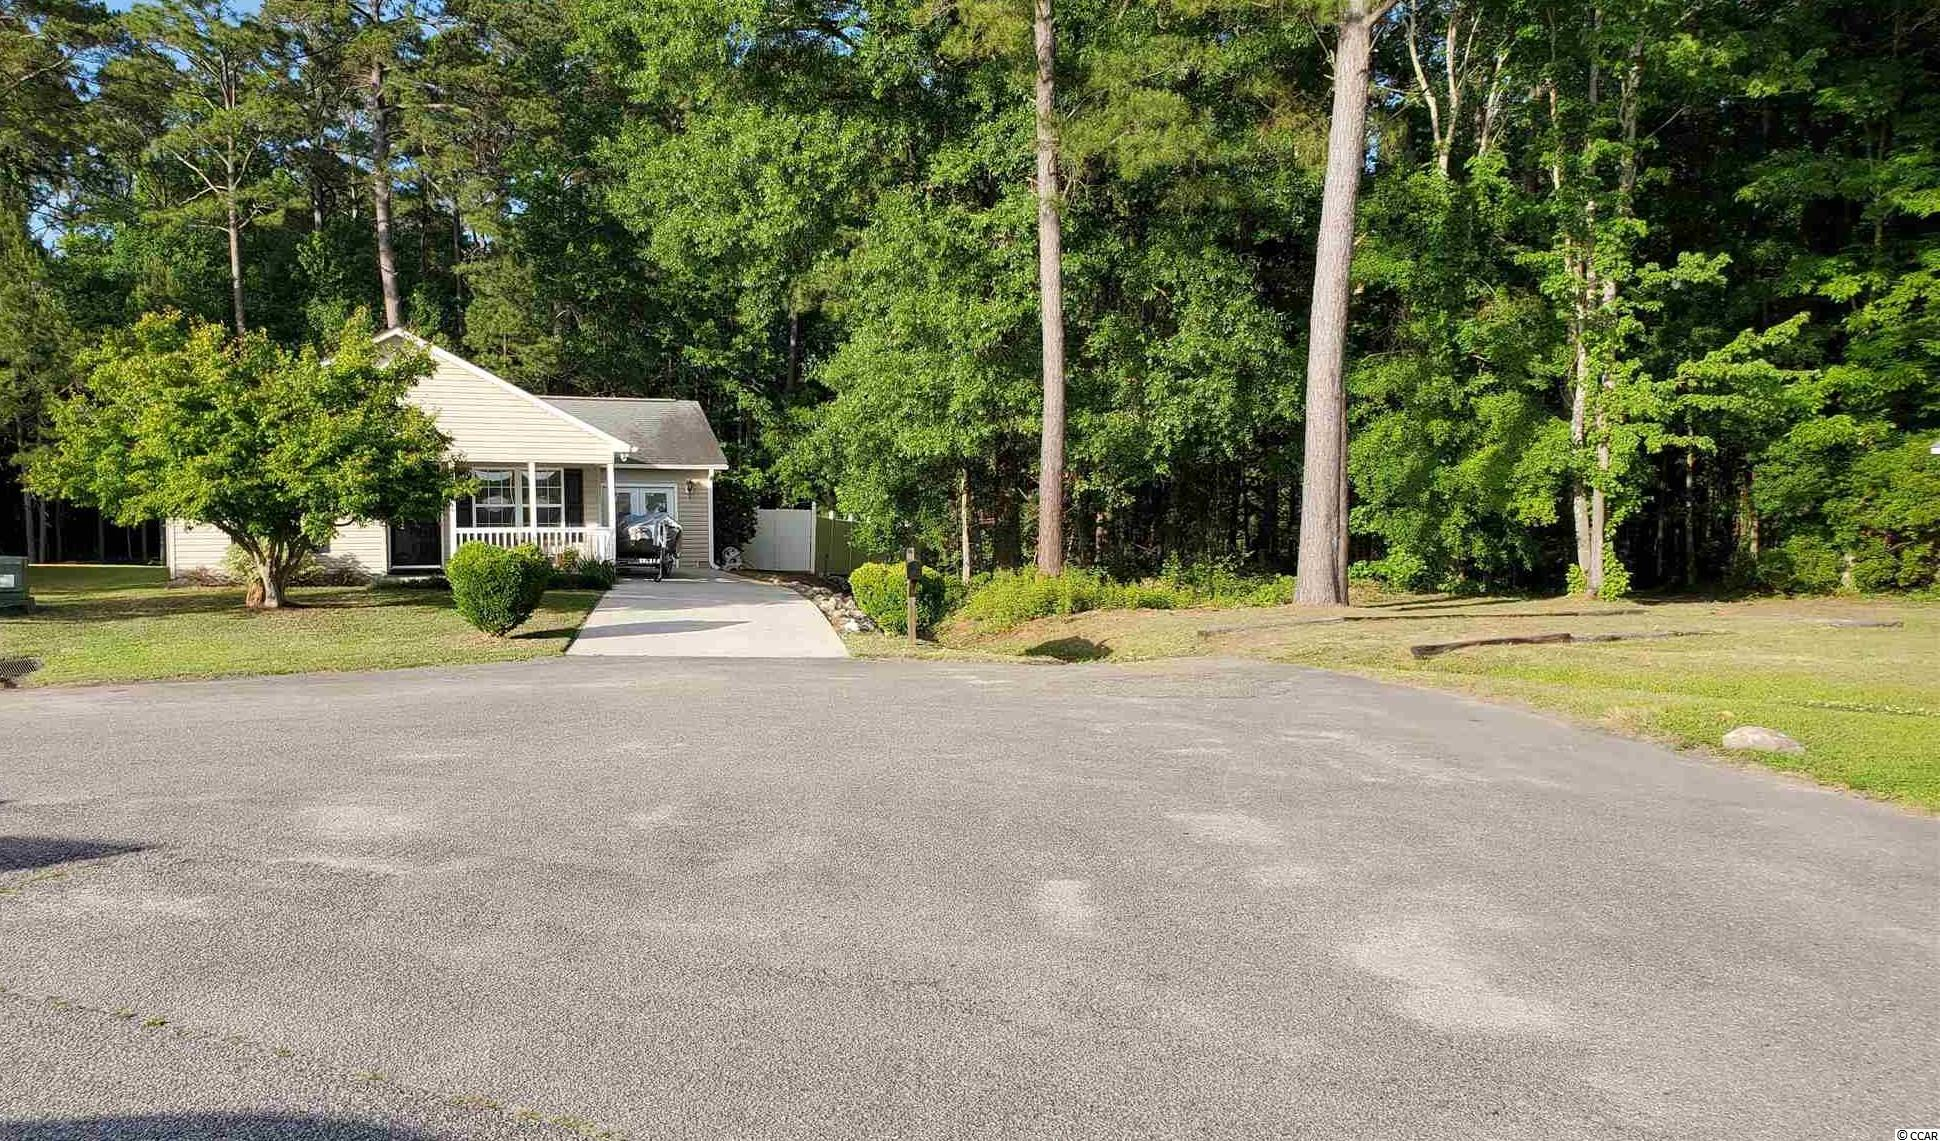 This charming home has a lot to offer! You have a rare chance to own a home in Murrells Inlet in the highly sought after Saint James school district on a pond with trees behind and to the side.  All the nature lovers out there will adore this home on this .22 acre lot!  This 4 bedroom home has over 1,650 heated square feet making it a great home to have a large family or even run a business from home.  The private fence encompasses almost a 200 square foot shed for storage, firepit and a nice view of the pond.  You can fish right from your back yard! This pond is stress free as the water overflow flows from the back of the pond to the forest behind. This low traffic area in the very back of the neighborhood makes it a nice place for children to play, throw the ball or ride a bike. This home is also on a semi-cul-de-sac giving you extra space in front of your home.  The lot location is unmatched in this neighborhood.  The kitchen is a good size with a island to give the chef room to work.  The stainless steel appliances are a nice touch as well.  The converted 1 car garage can be used for a 5th bedroom, den, bonus room, office or whatever you would enjoy.  There is a 140 sq ft screened in back porch with a ceiling fan to ensure you will be enjoying all of those beautiful Carolina days.  The home is located only 10 minutes to the beach, the famous restaurant row on the Inlet, shopping and even less time to the International Coastal Waterway.  Location, location, location! This home is truly a must see!!  Book your showing today!  Buyer is responsible for the verification of all measurements.  Copy and paste this link in your browser for a virtual tour:  https://youtu.be/kjTiXpuRy_o